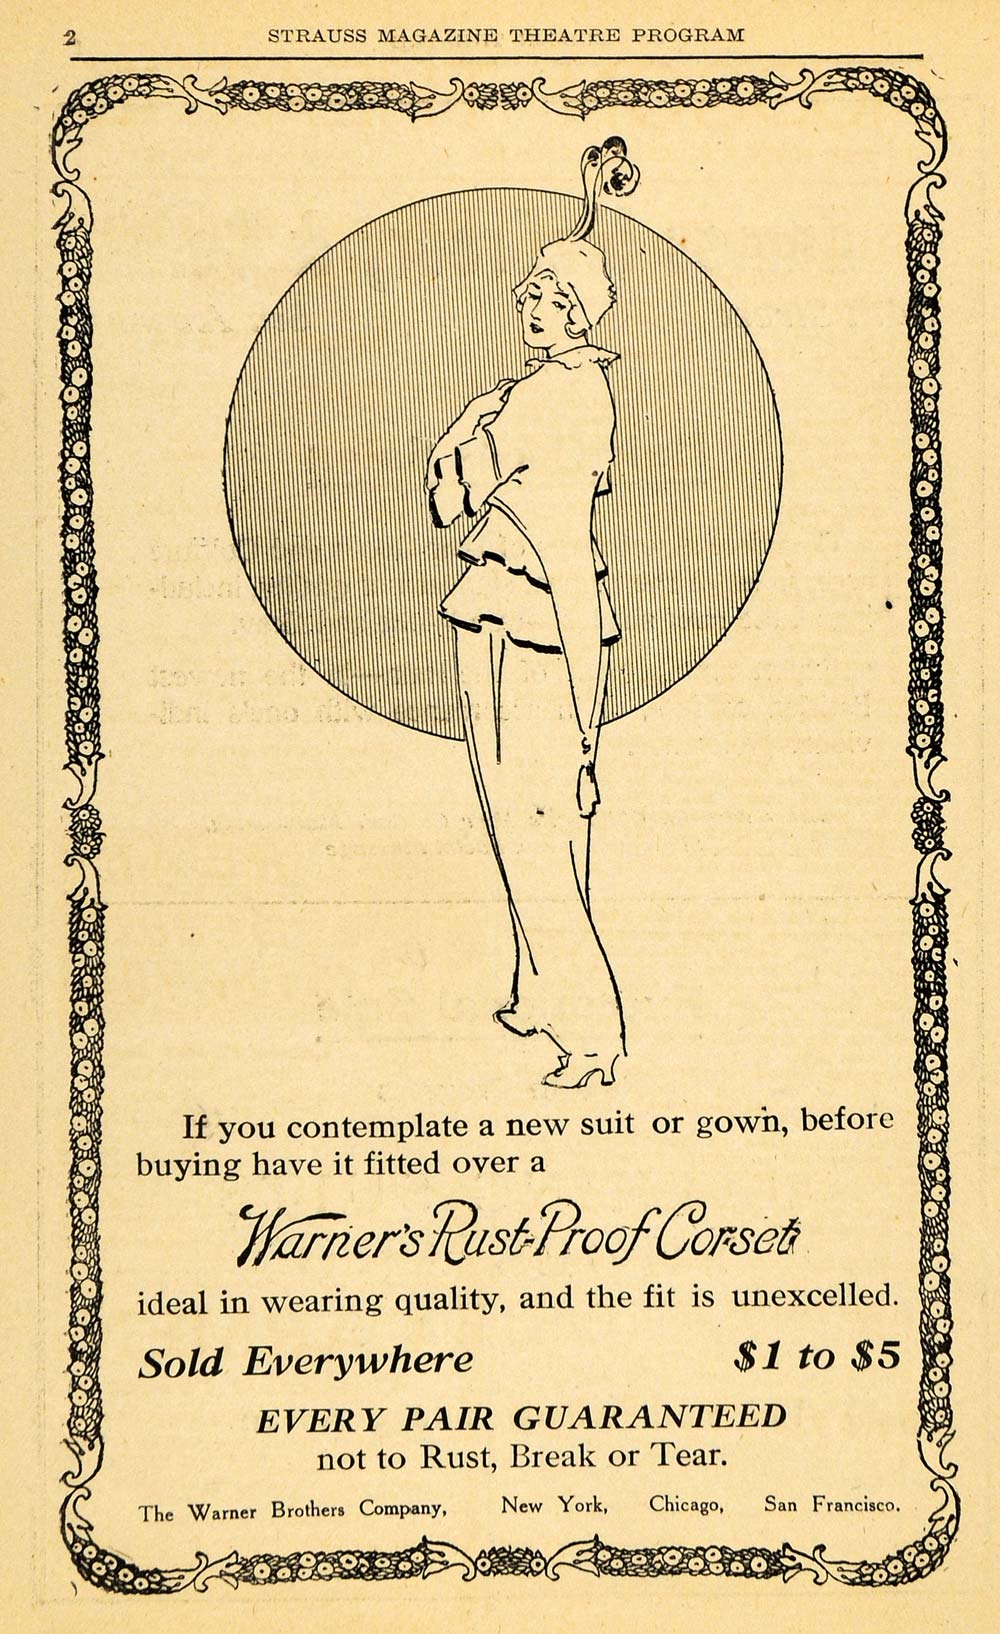 1914 Ad Warner's Rust-Proof Corset Suit Gown Fashion - ORIGINAL ADVERTISING THR1